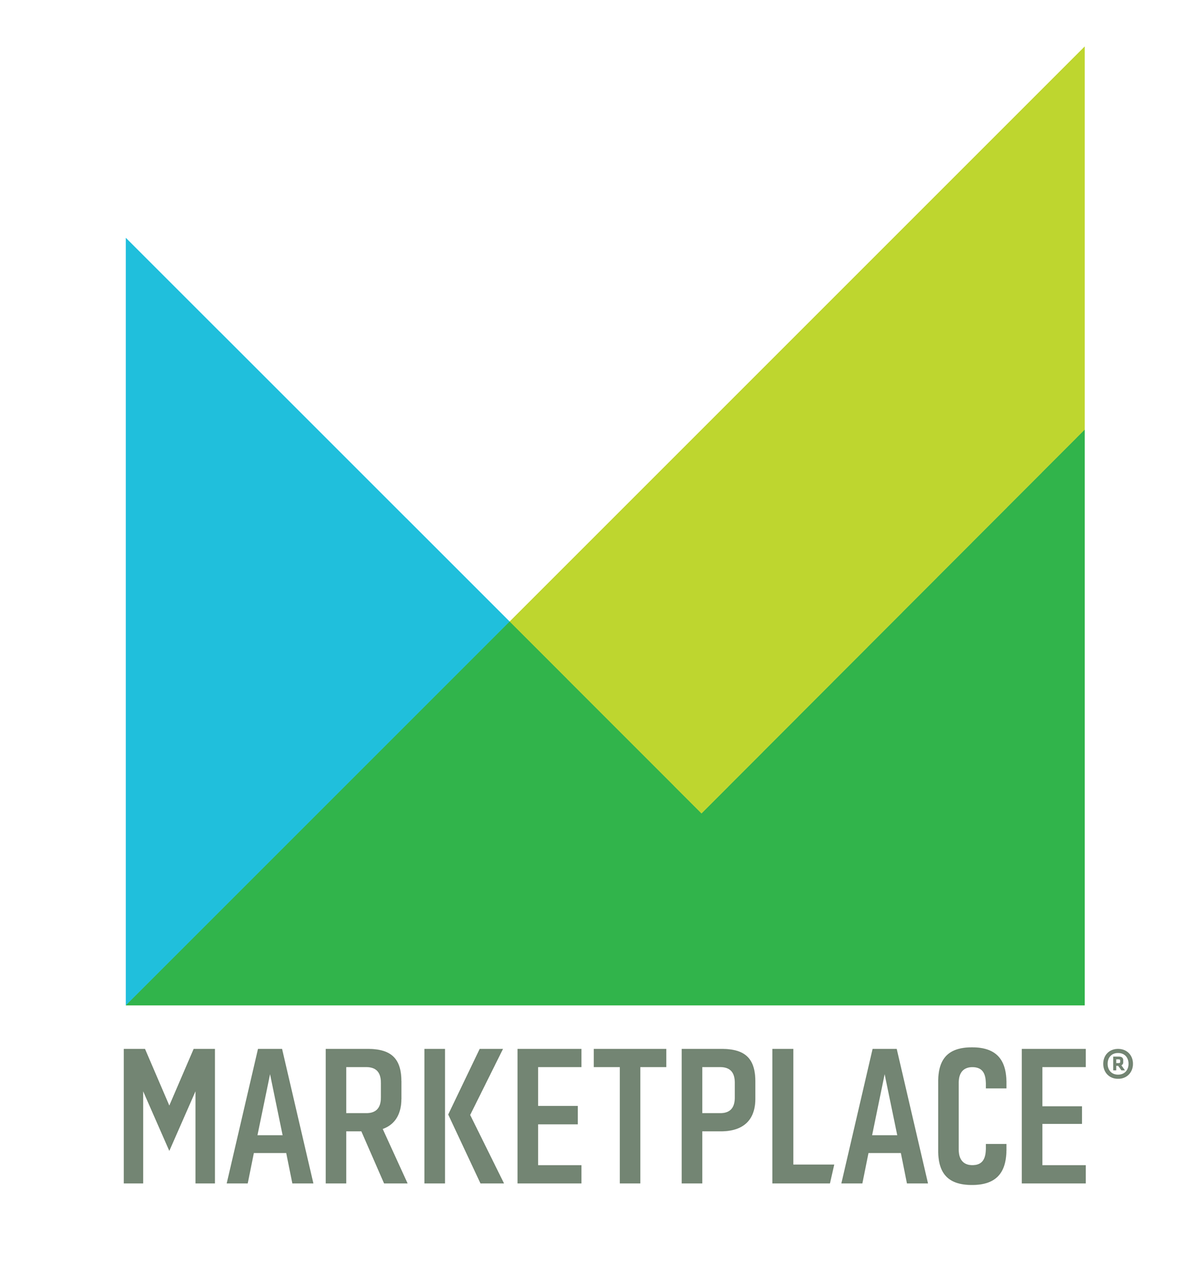 Marketplace (radio program) - Wikipedia Marketplace